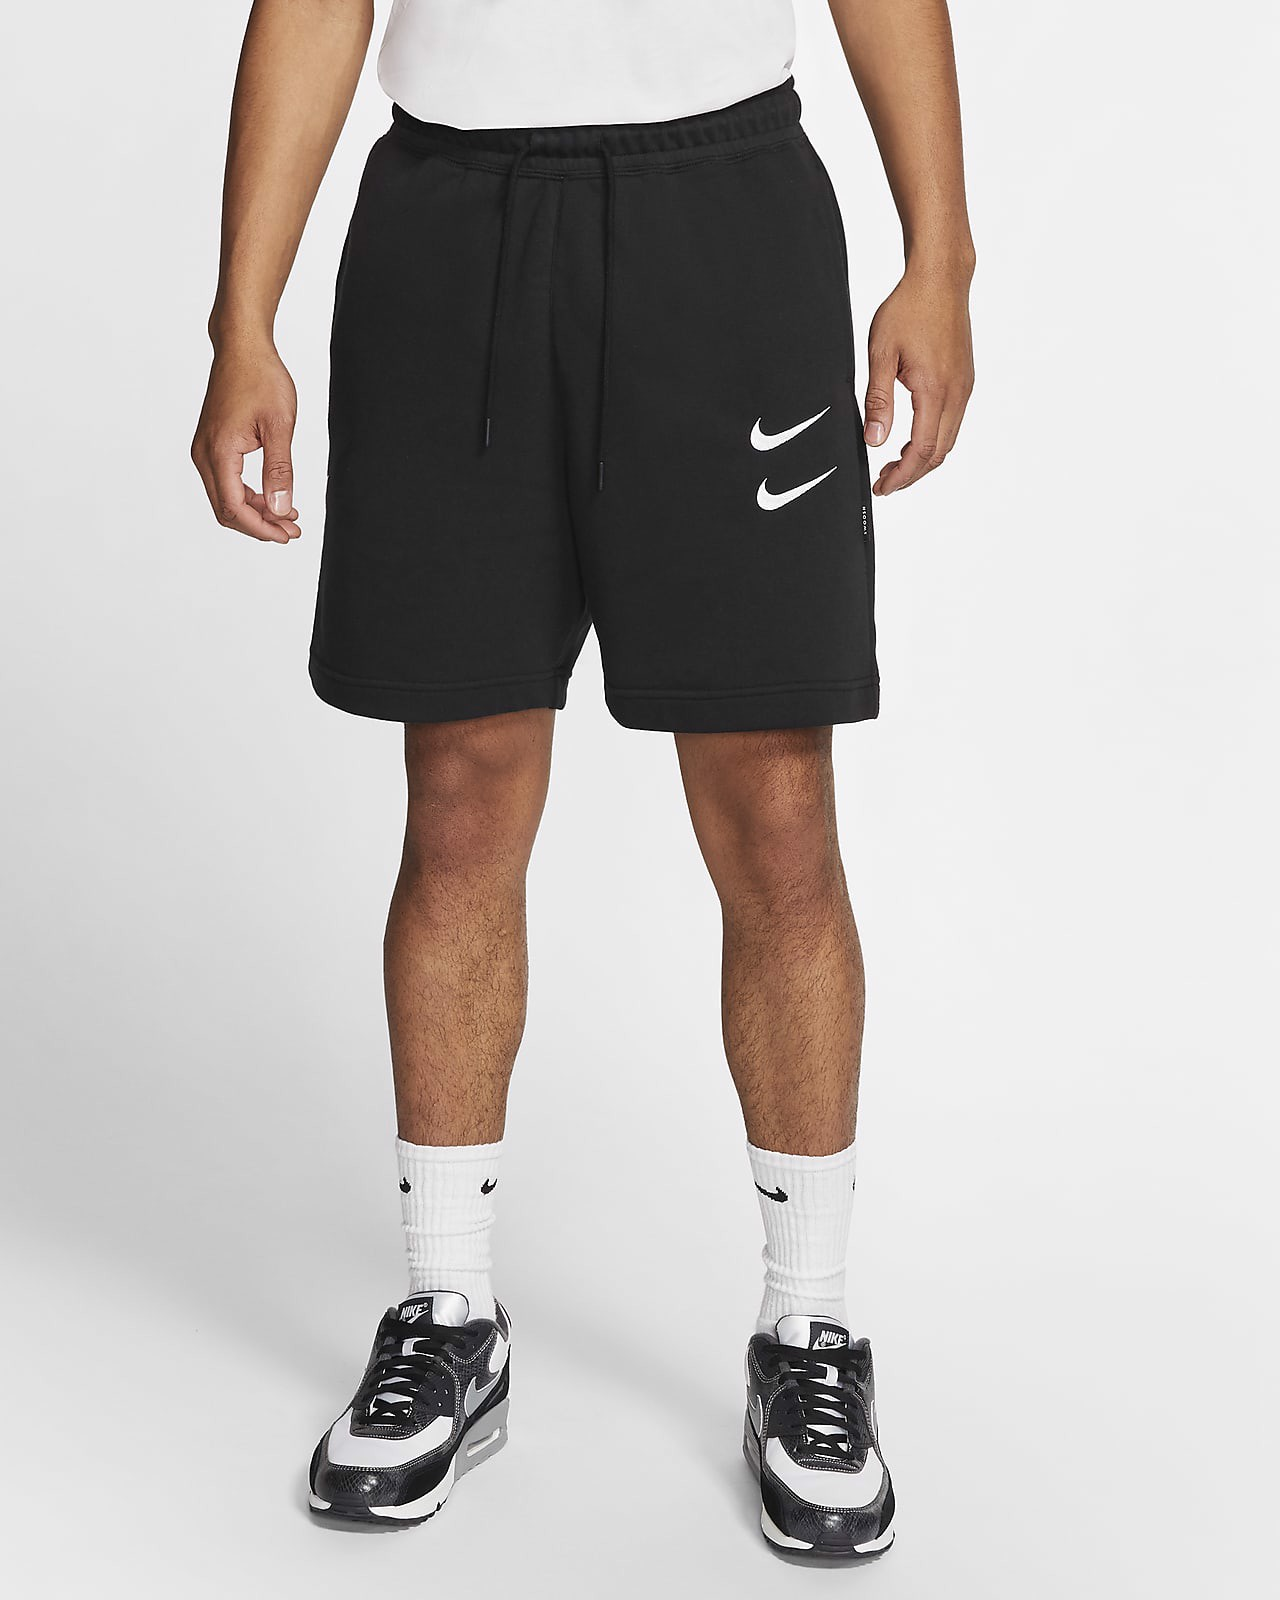 Nike Sportswear Swoosh French Terry Shorts CJ4882-010